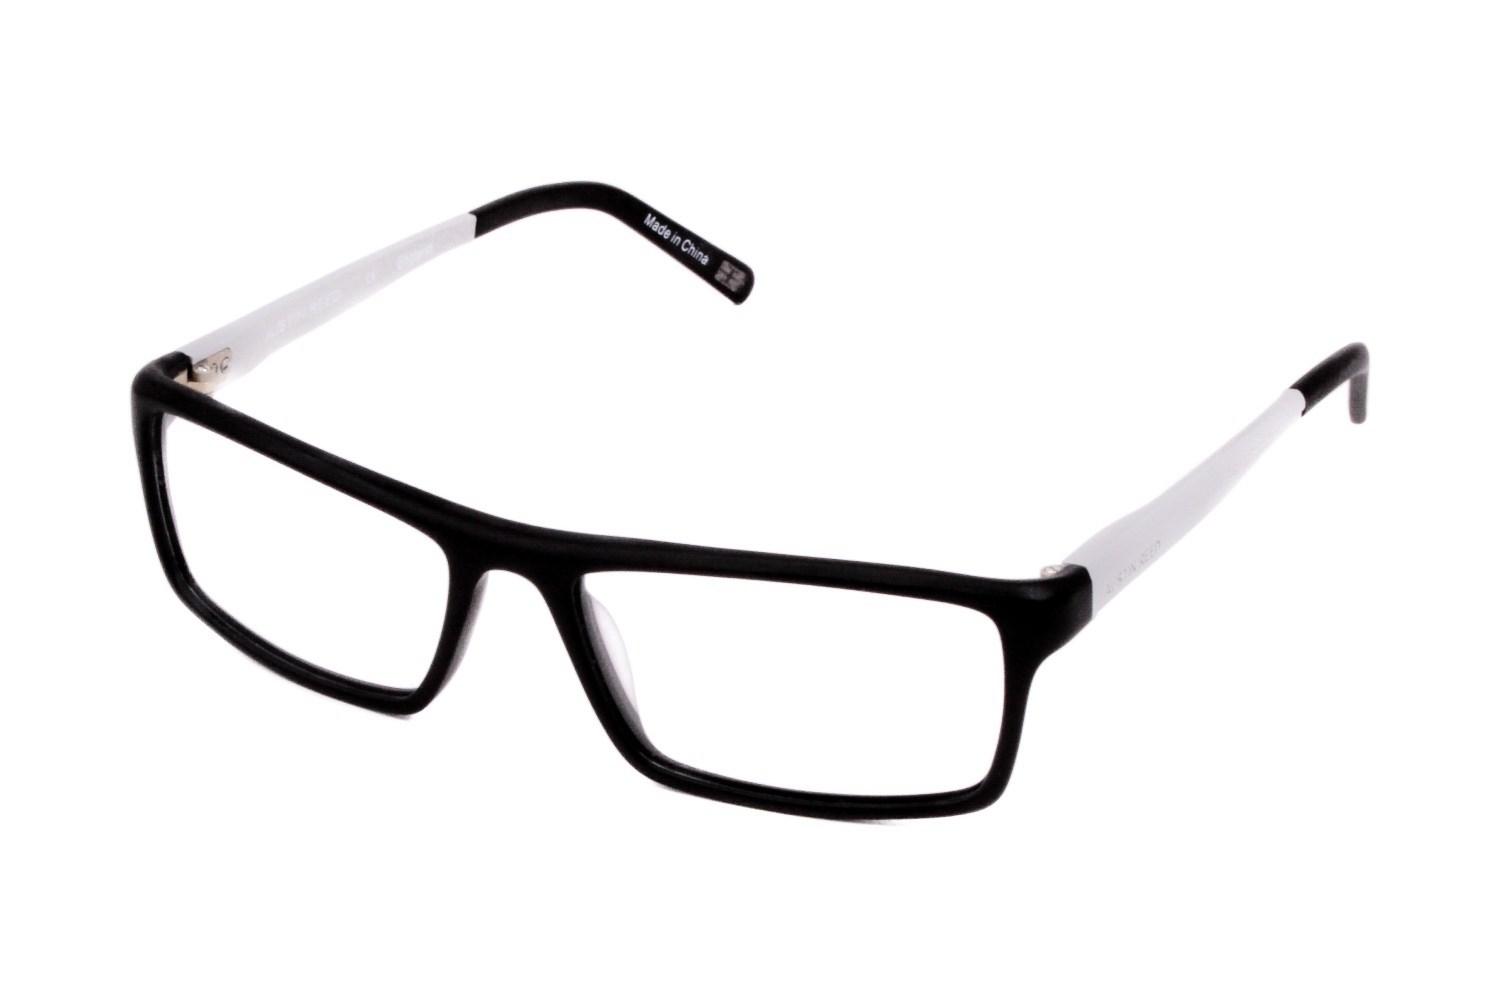 Austin Reed Ar T08 Prescription Eyeglasses Frames Quata